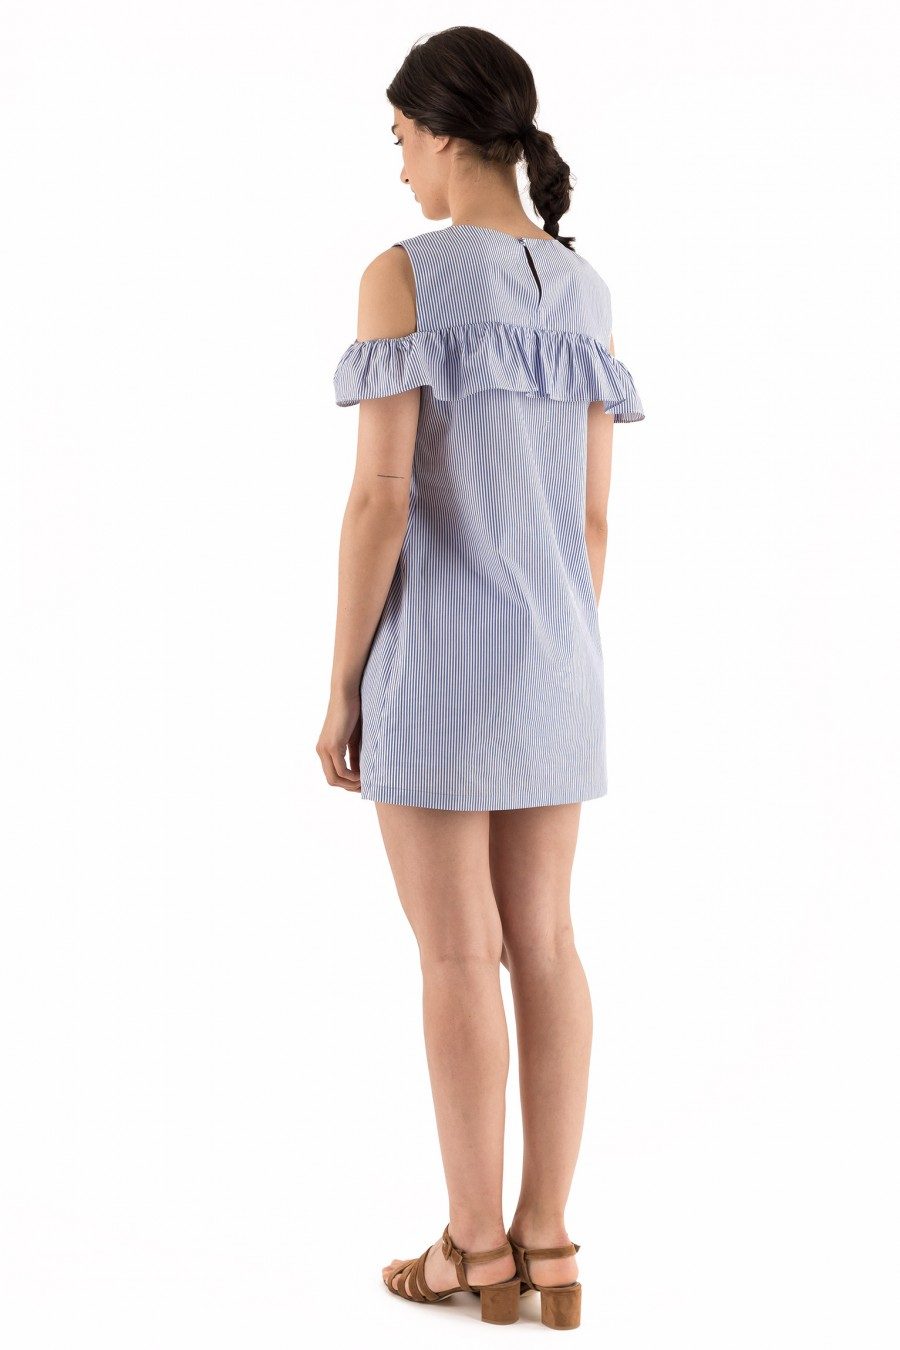 Cotton summer dress with tied shorts